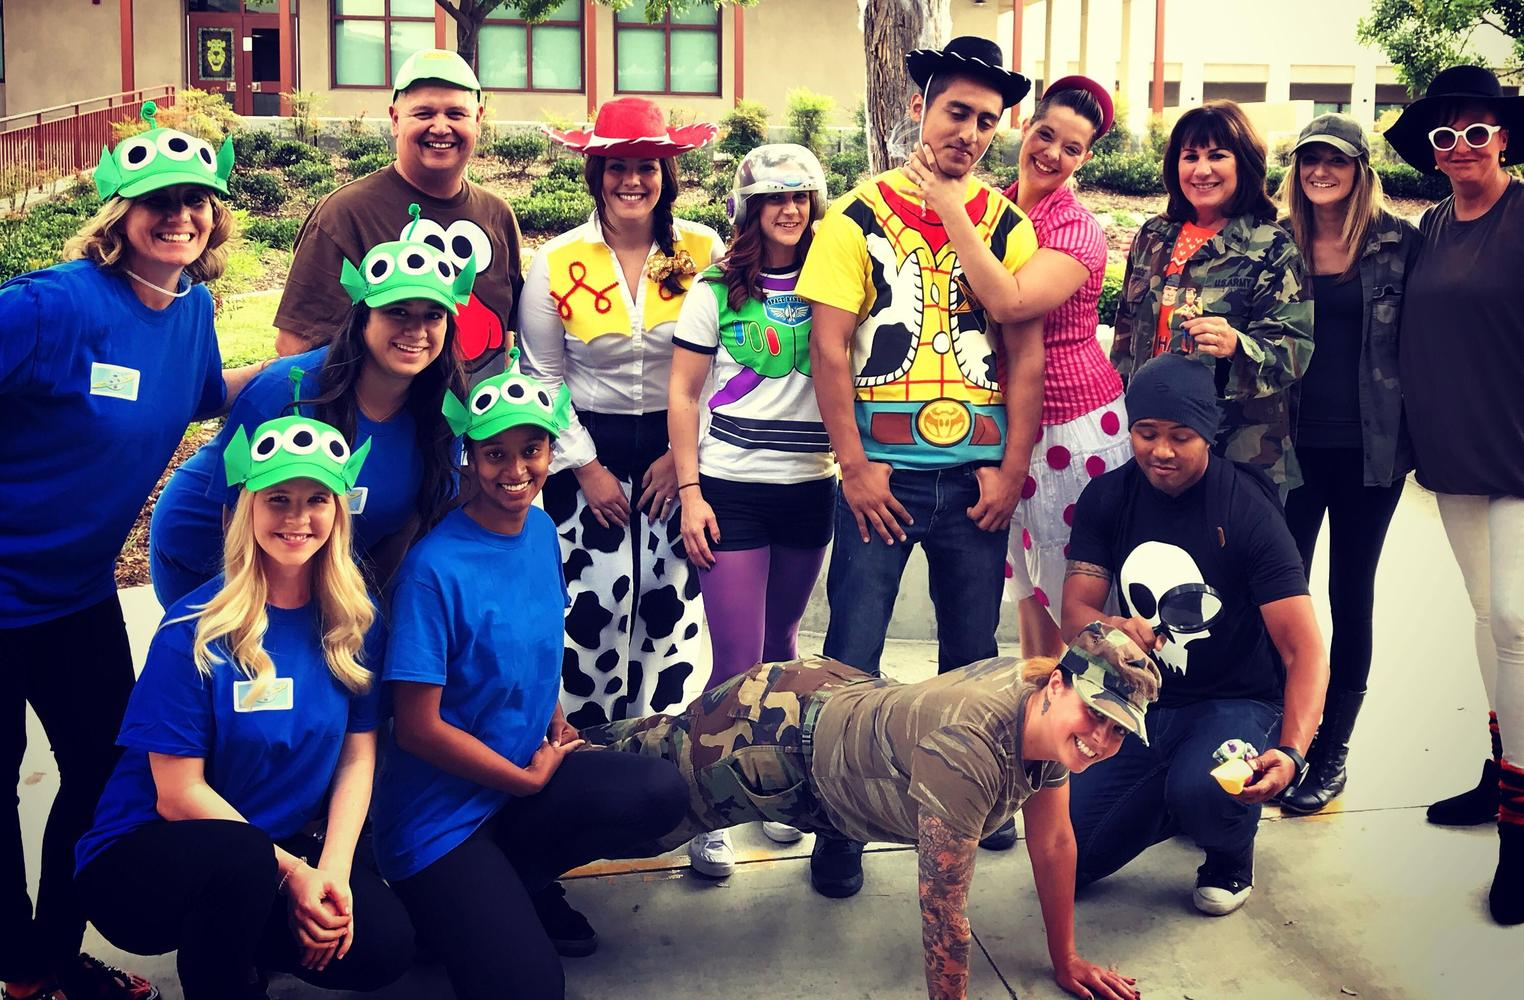 Special Ed staff dressed as Toy Story characters for Halloween